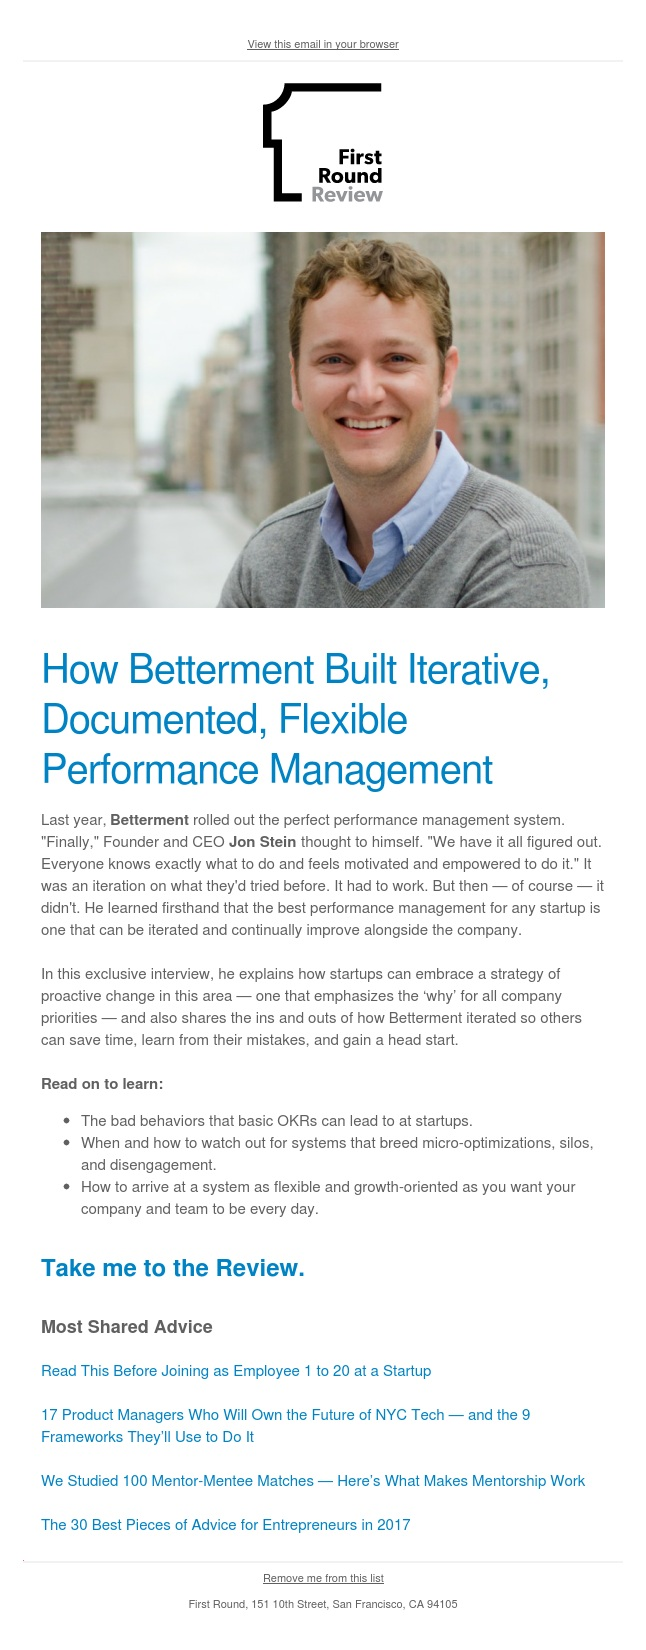 Betterment Tested 3 Performance Management Systems So You Don't Have To